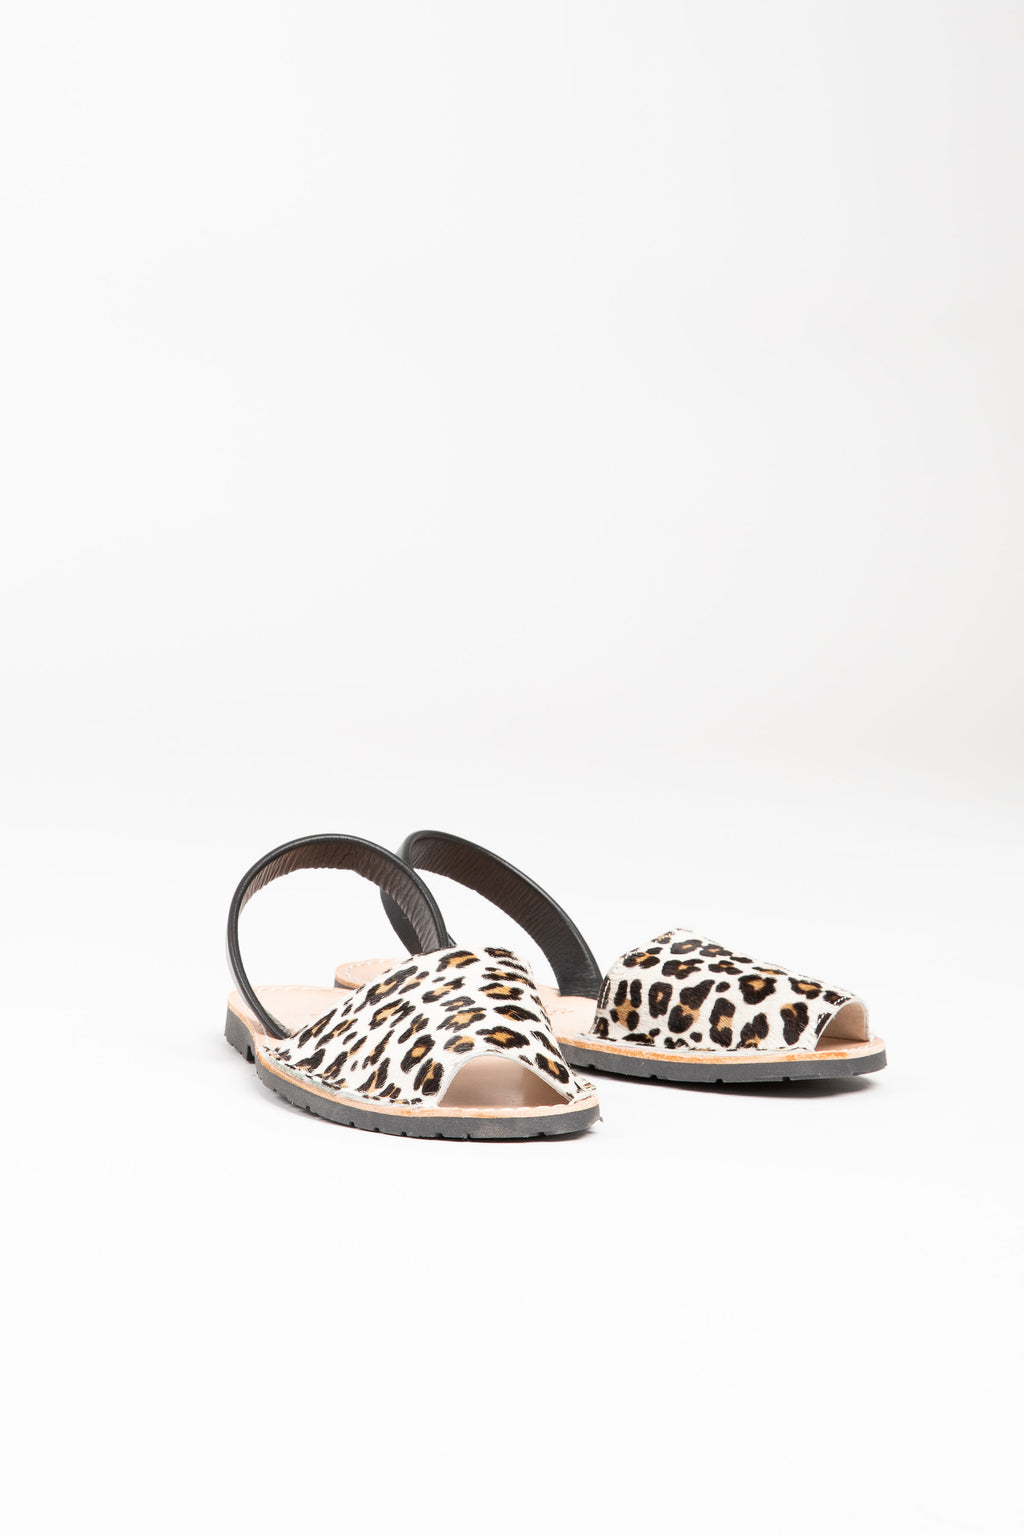 PONS: Classic Style Animal Prints in Leopard